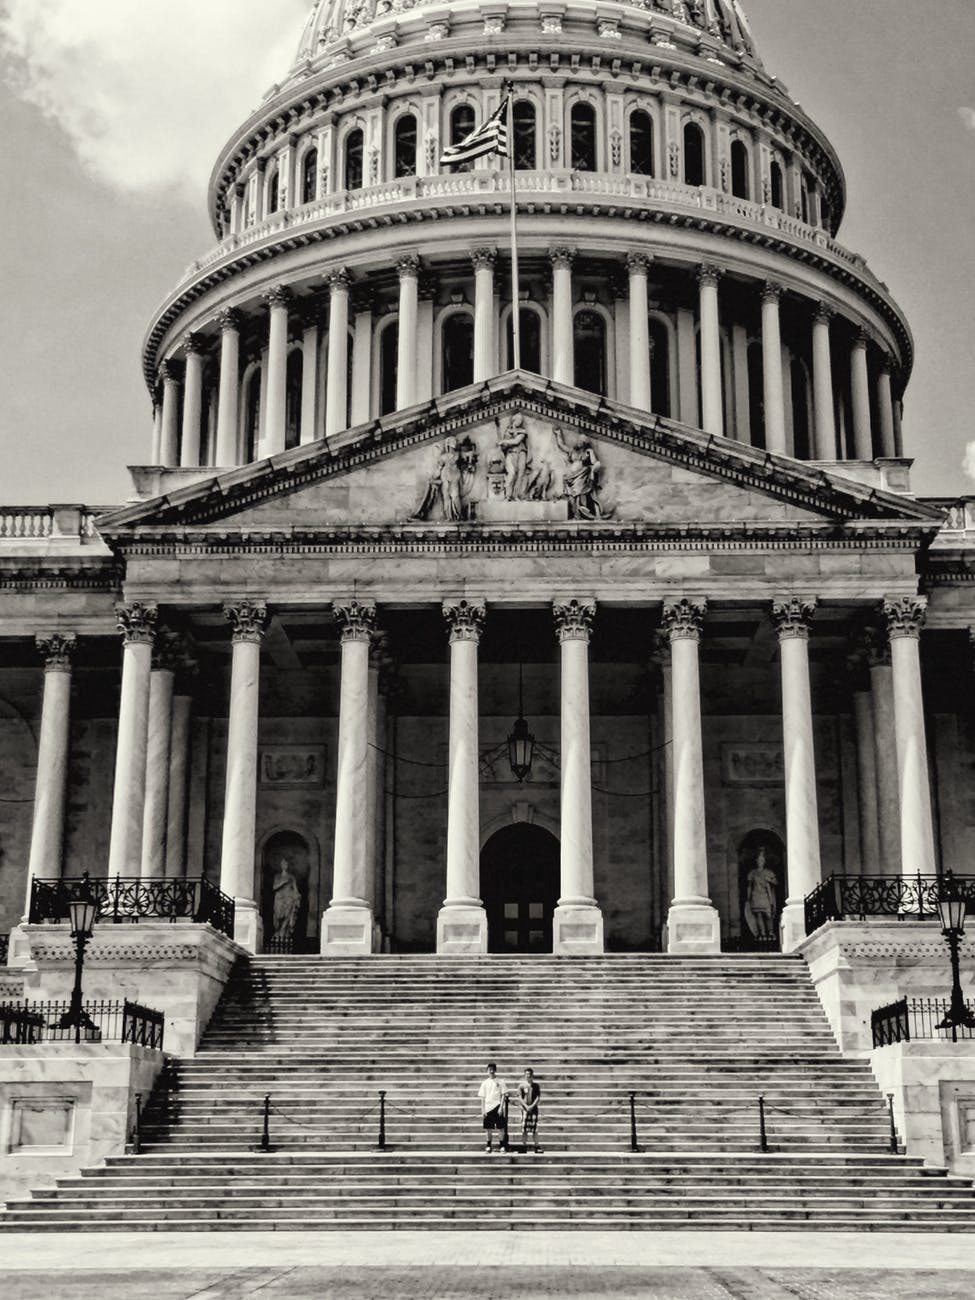 facade of usa capitol with columns and staircase